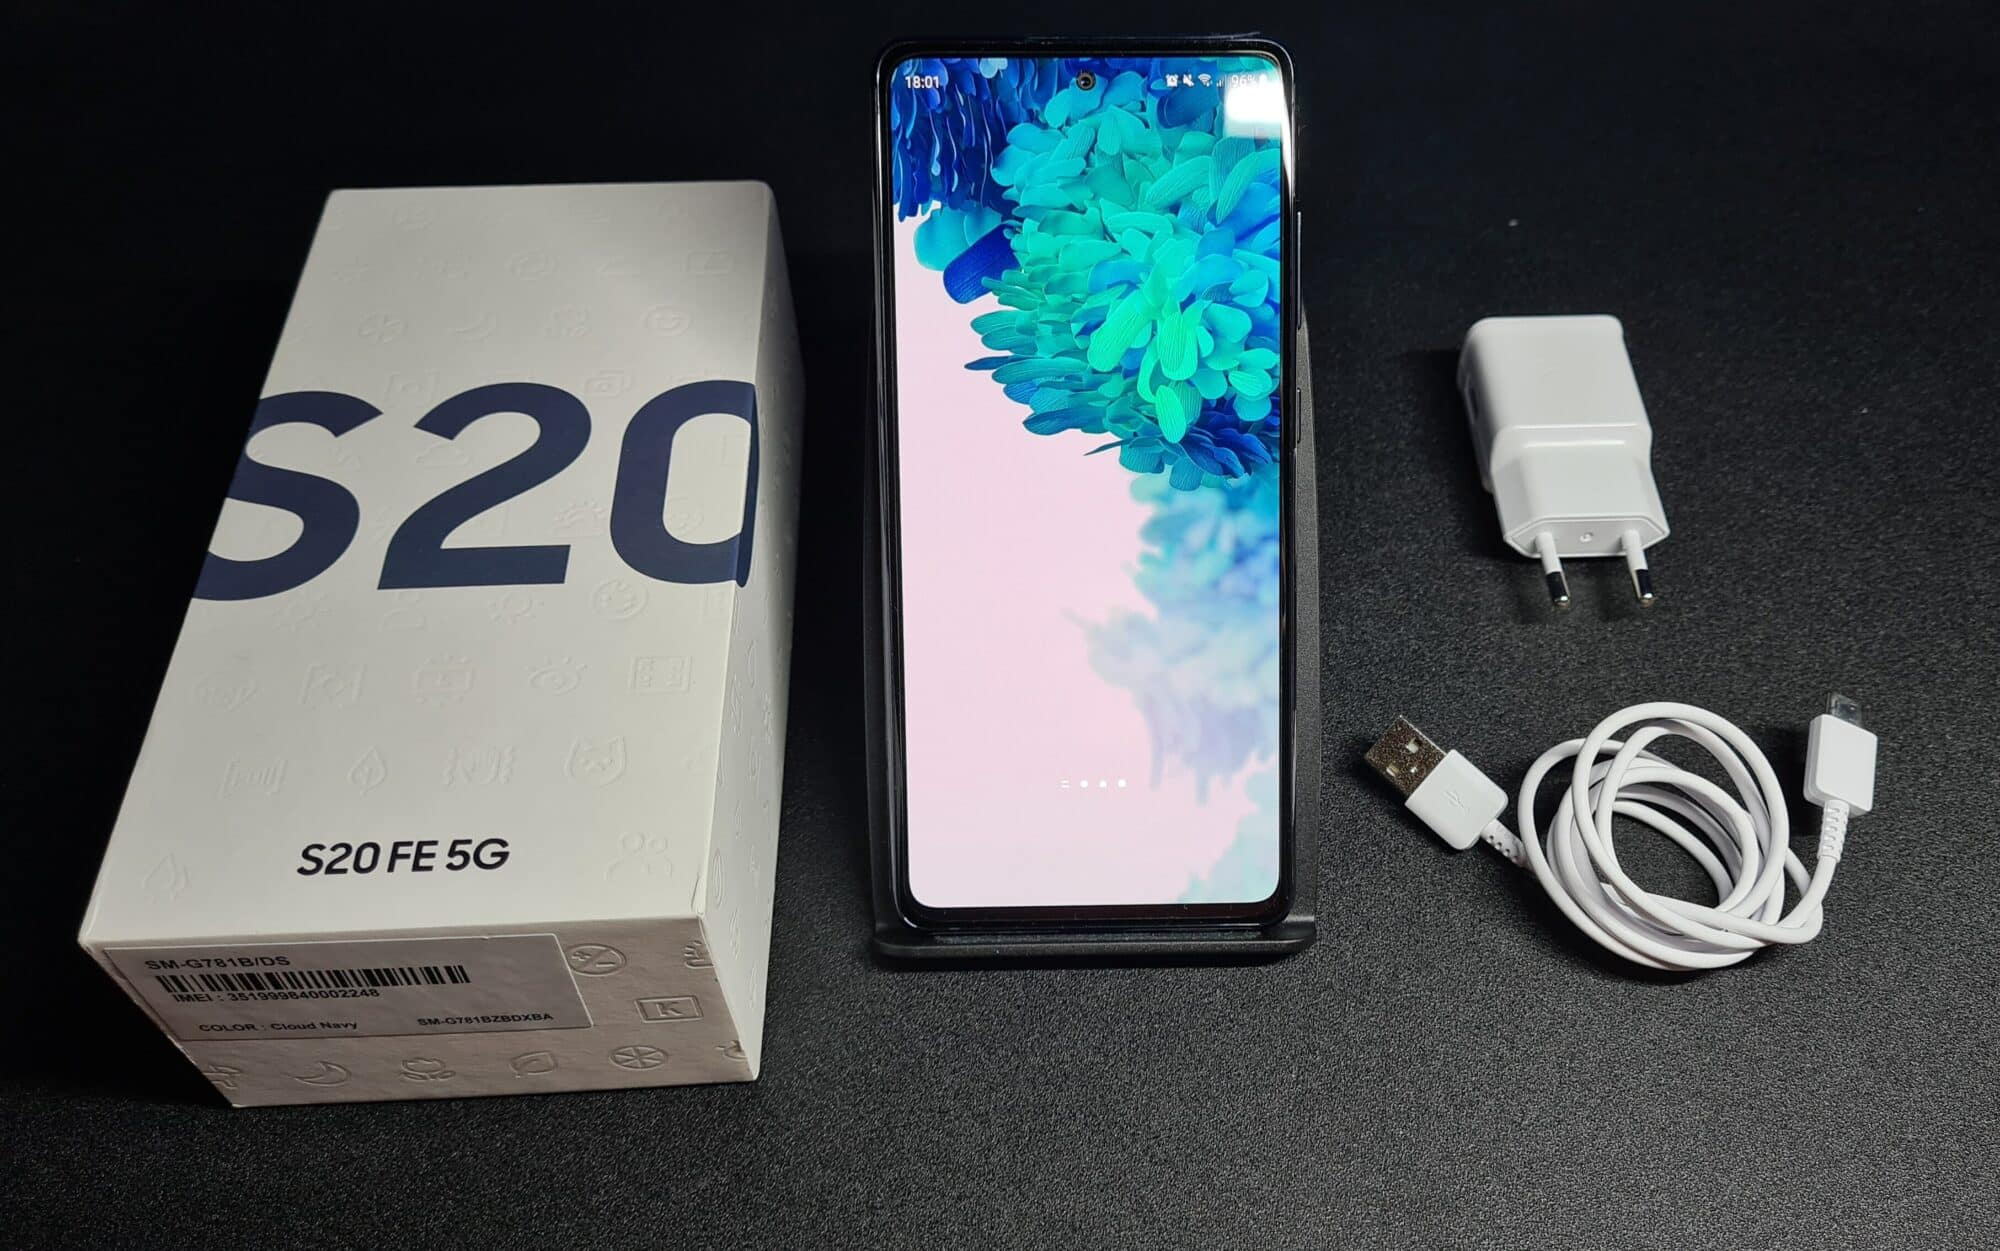 Unboxing S20 FE 5G test samsung smartphone